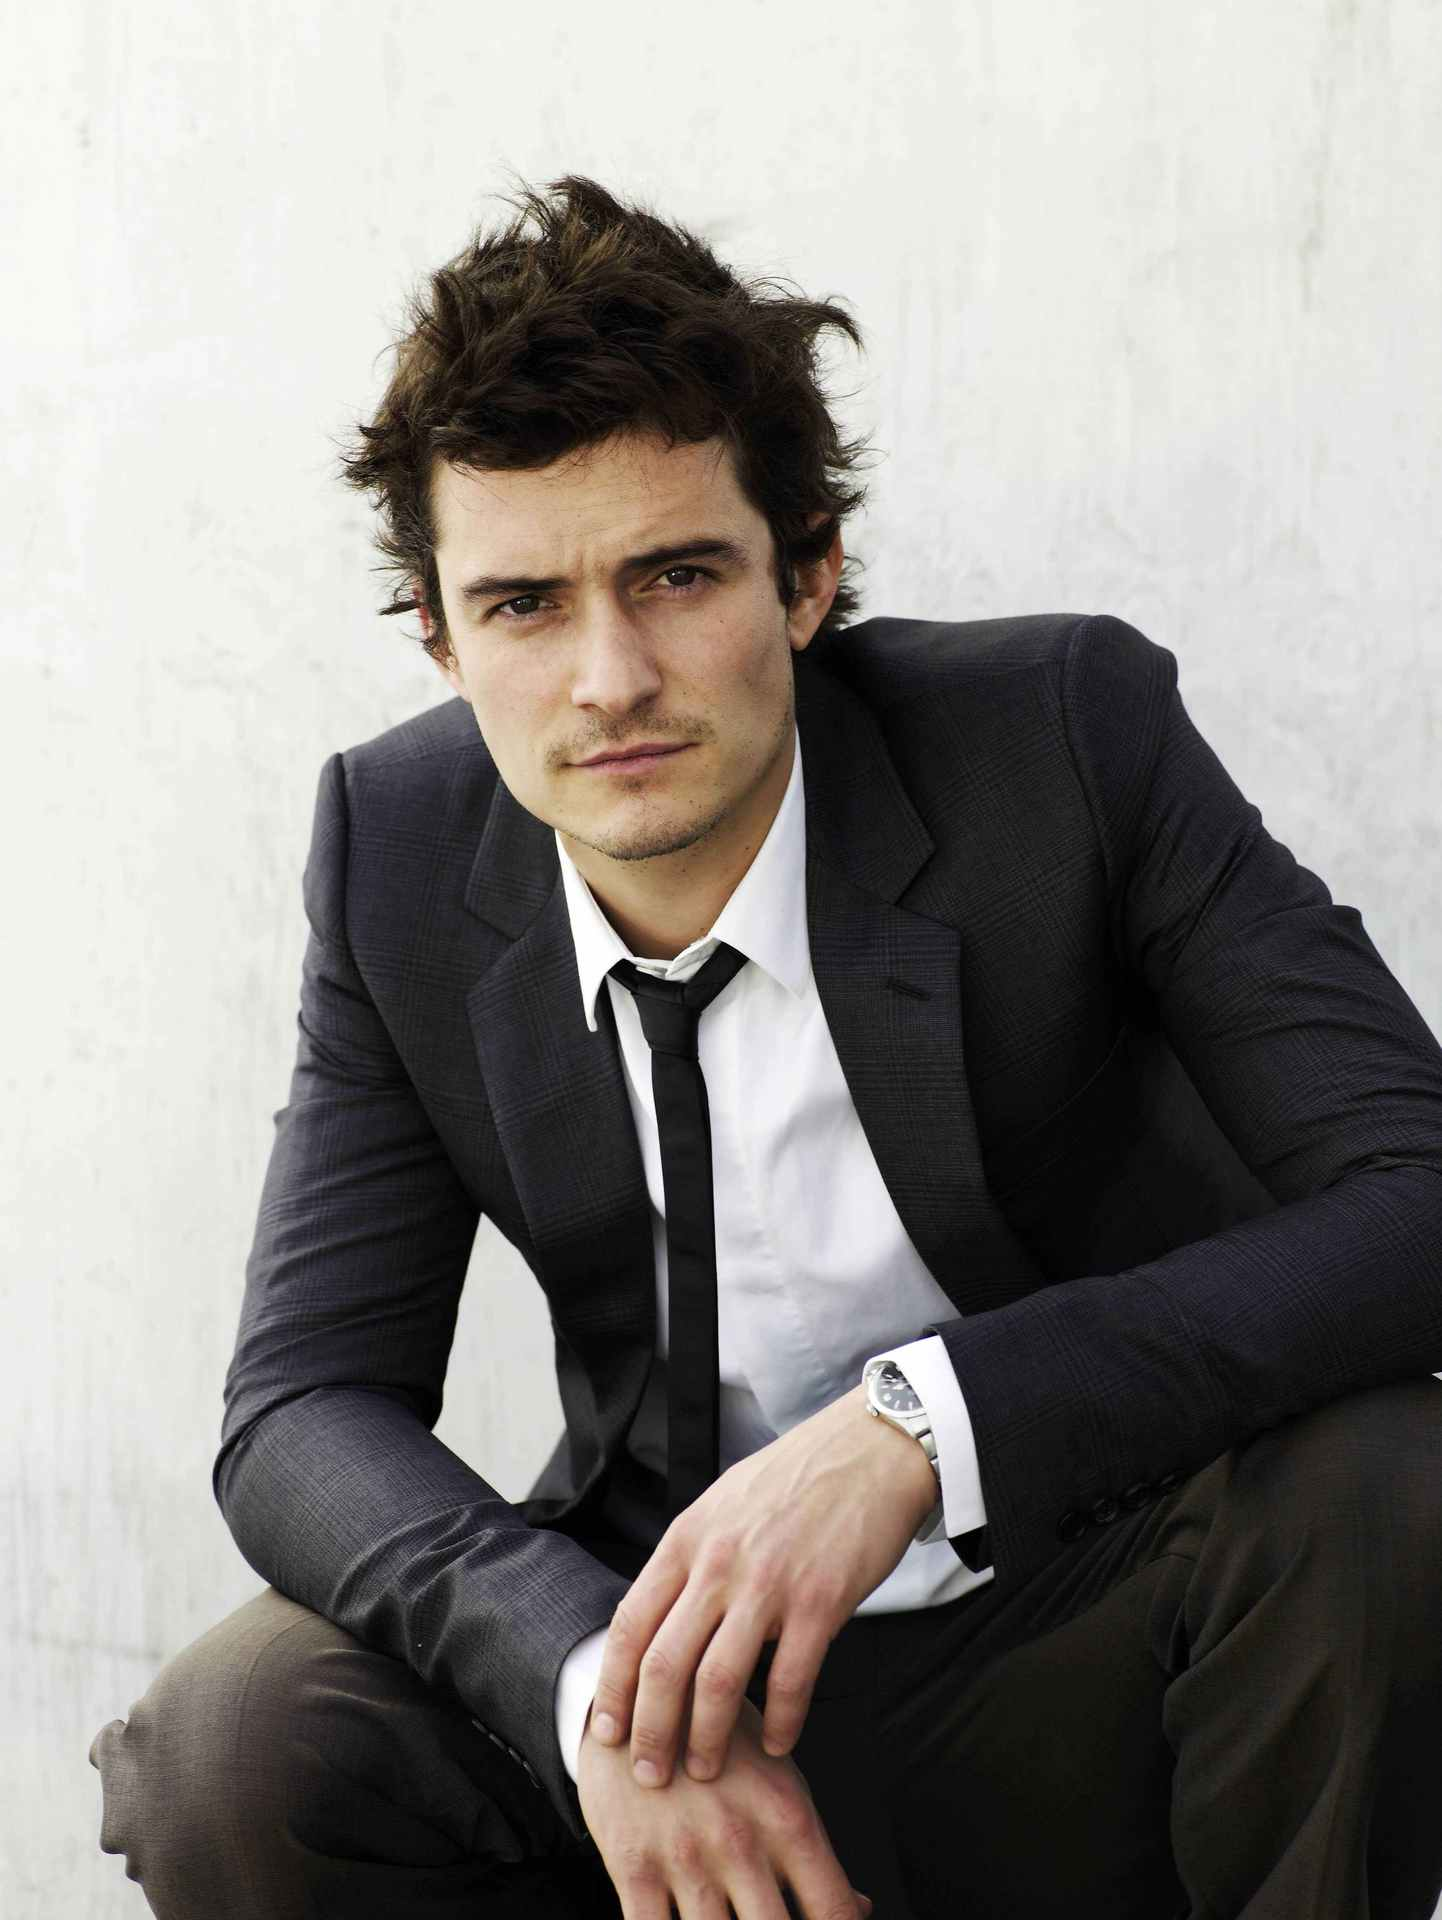 Orlando Bloom HQ wallpapers